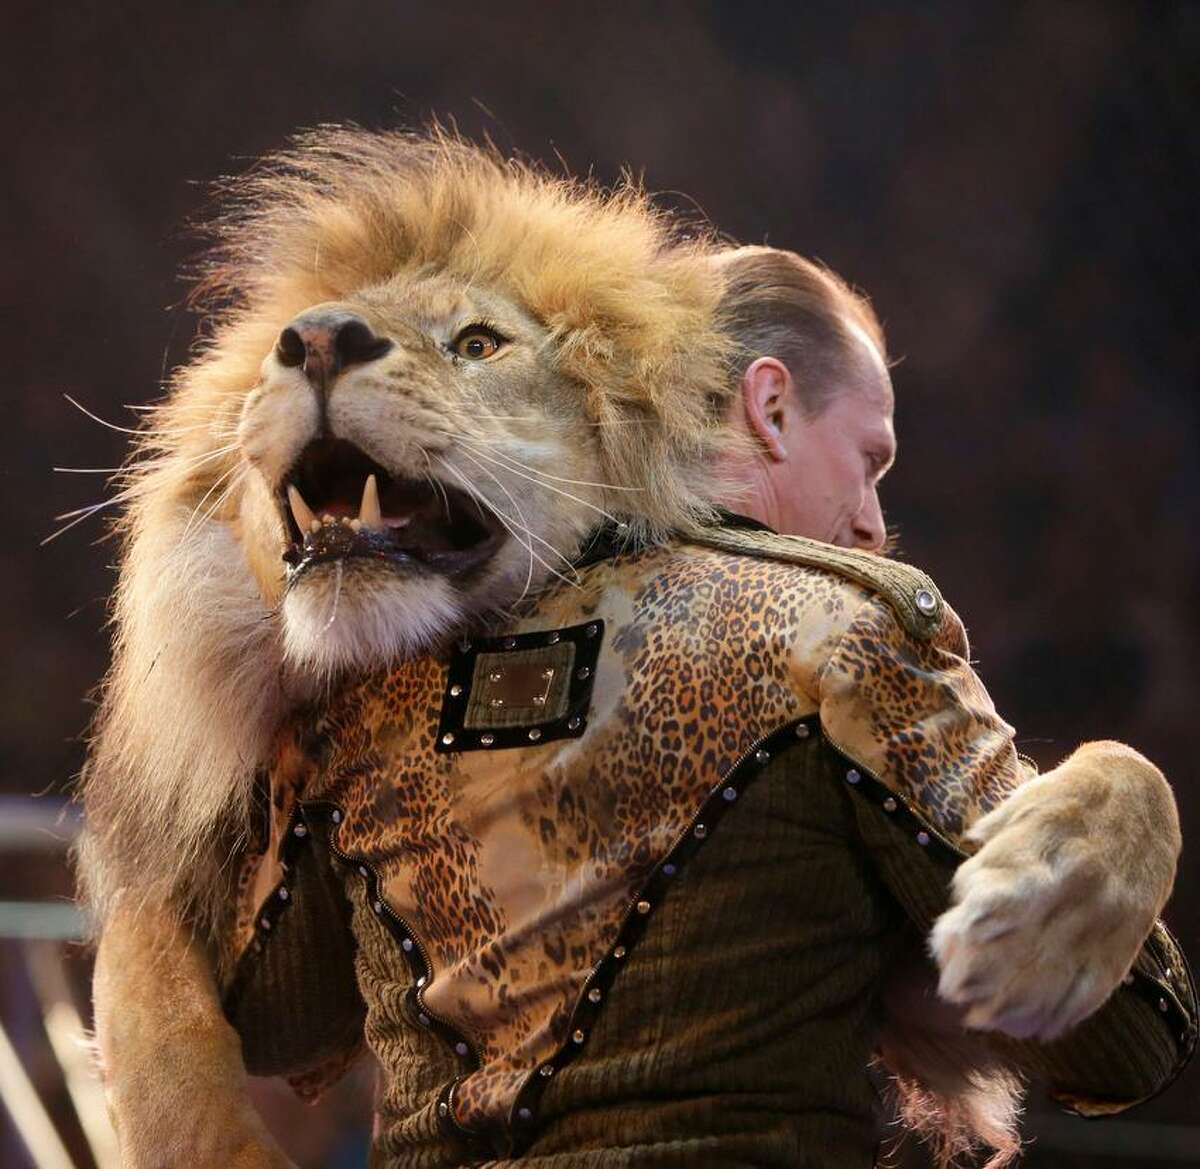 Oleksiy Pinko, a circus artist, dances with a lion during presentation of the new program in Ukraine's National Circus in Kiev, Ukraine, Wednesday, May 15, 2013. (AP Photo/Efrem Lukatsky)